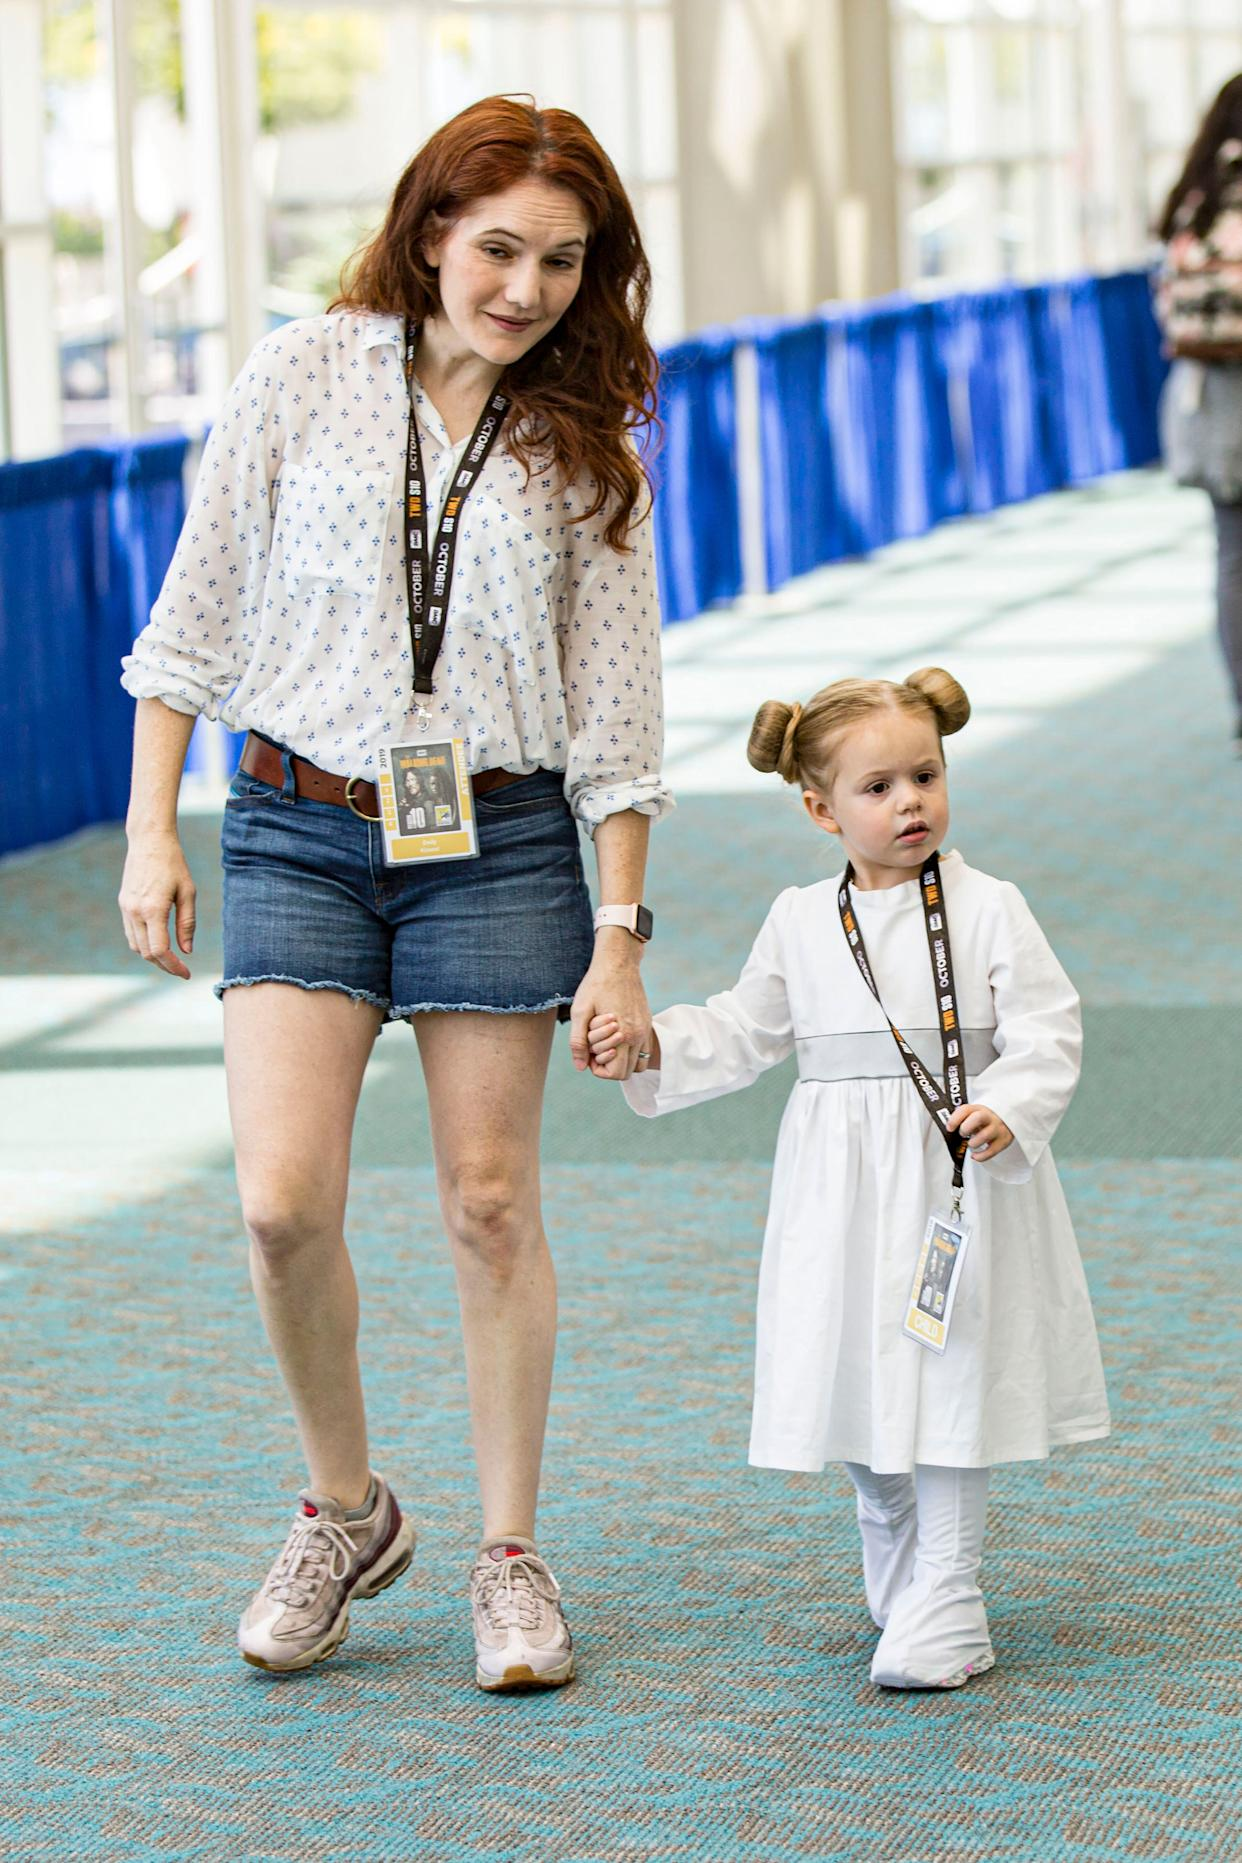 """A young girl dressed as Princess Leia from """"Star Wars."""""""